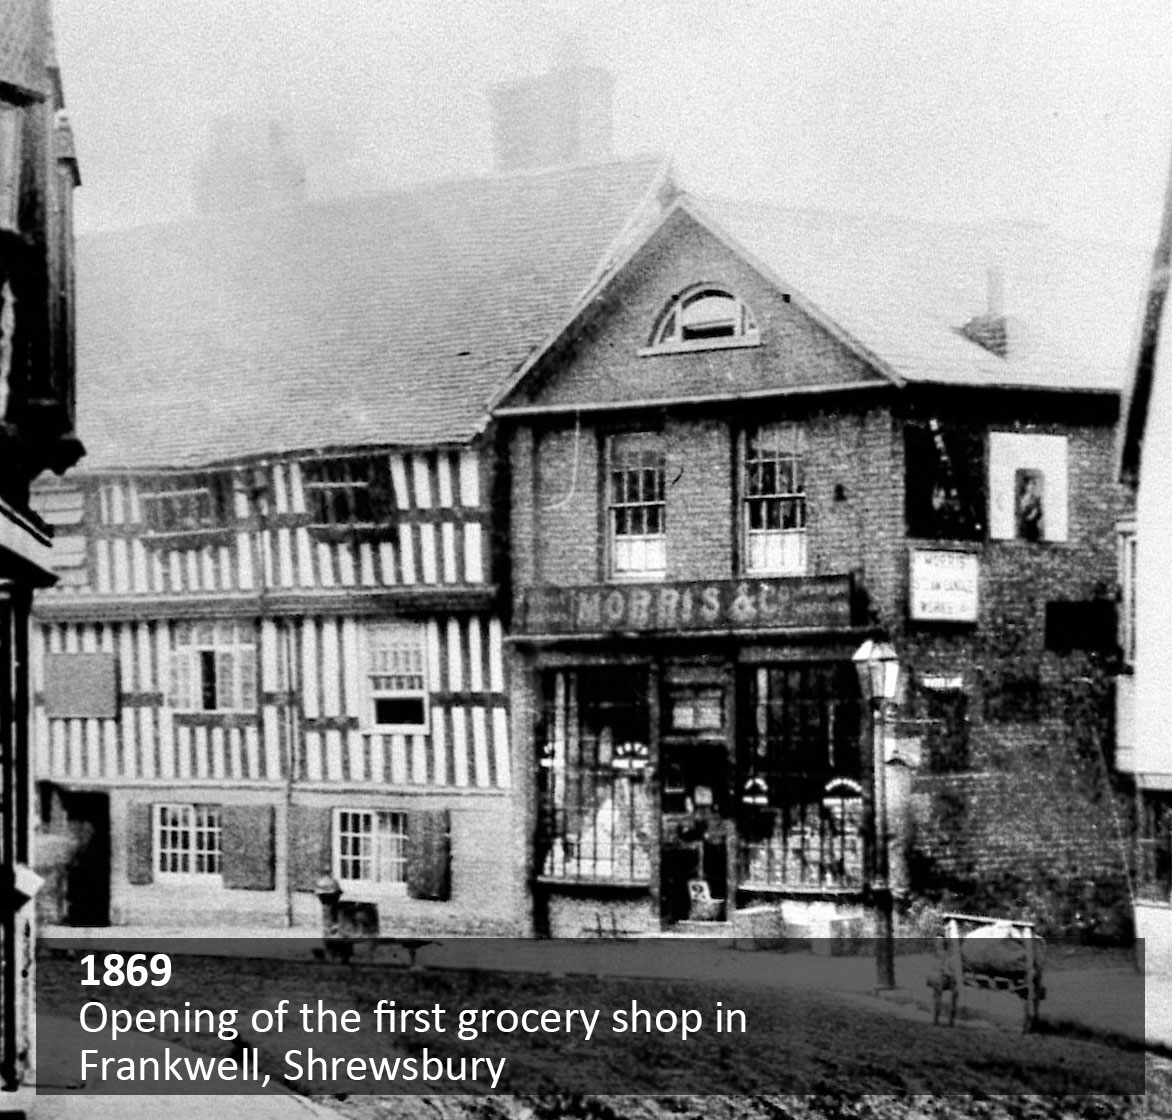 Opening of the first grocery shop in Frankwell, Shrewsbury